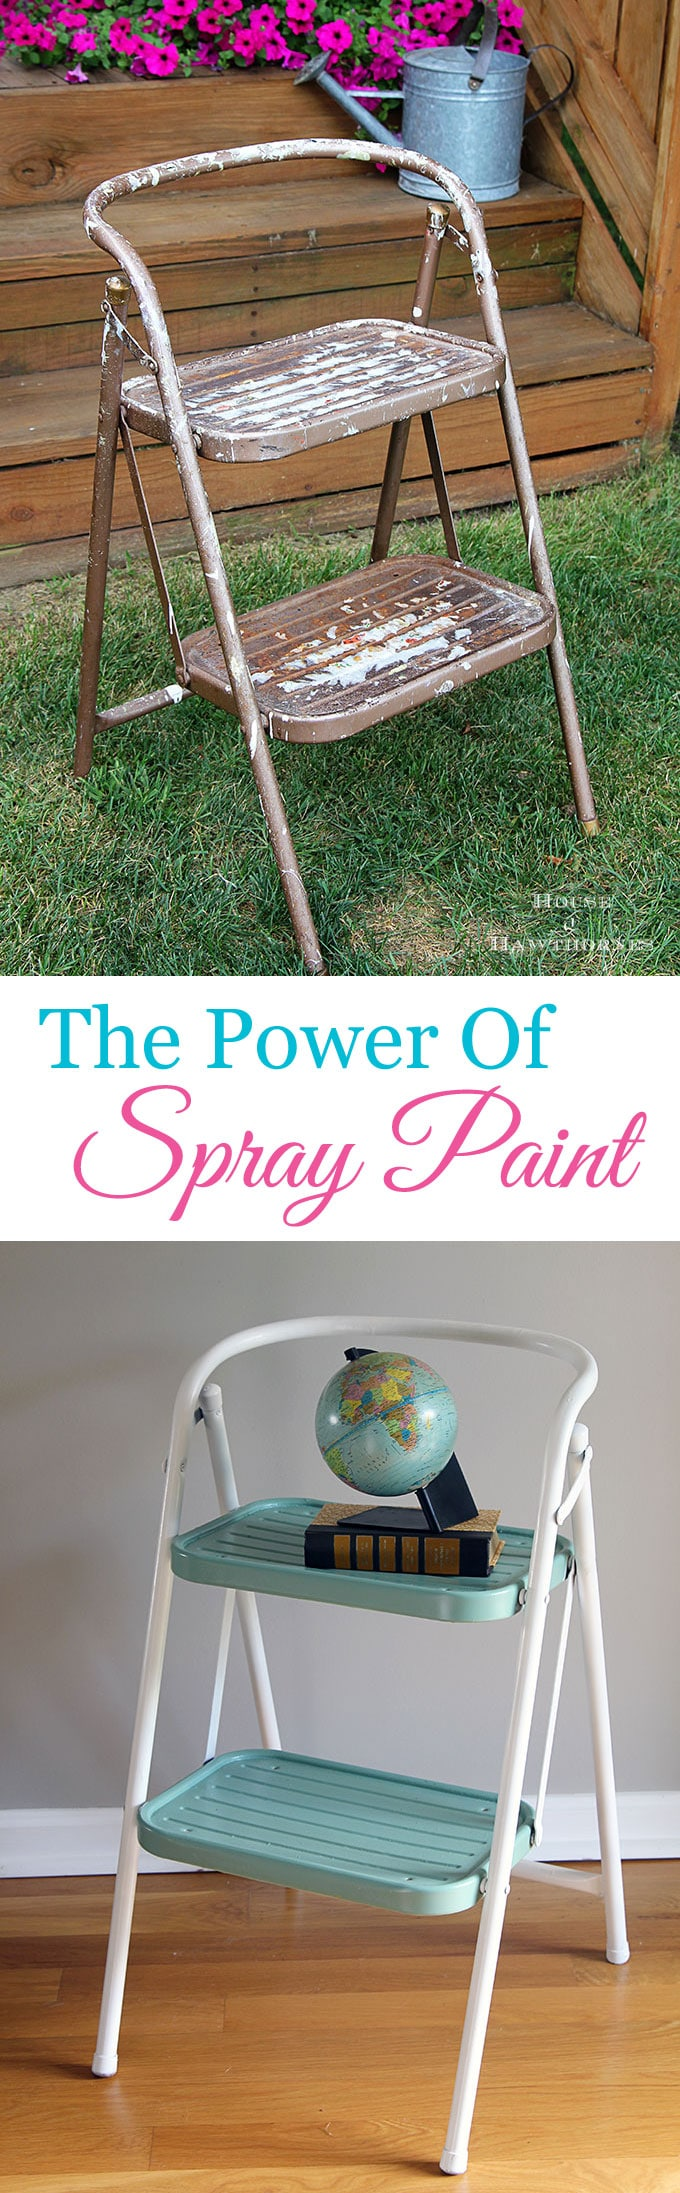 A yard sale makeover using spray paint to update a vintage step stool into a work of art.  OK, that may be going a bit far, but it is a cute DIY project.